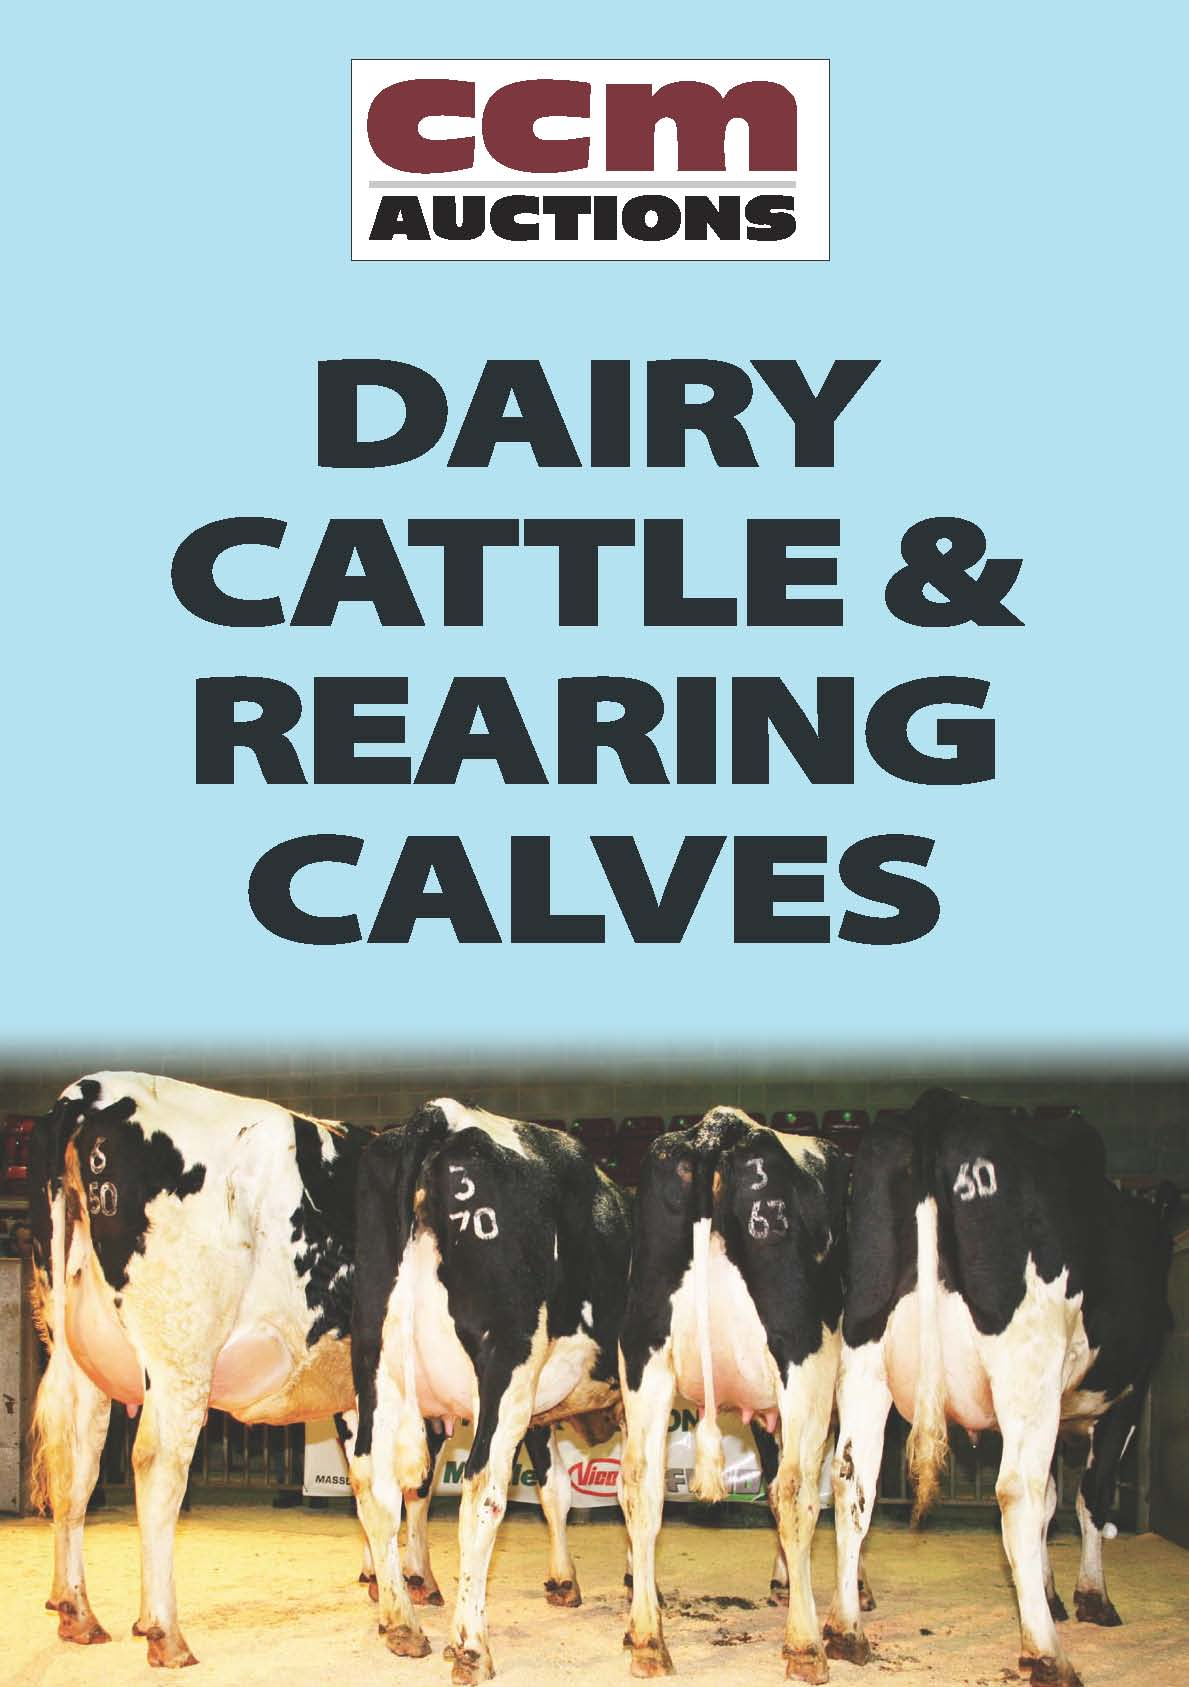 DAIRY & CALVES - MONDAY 28TH MARCH 2016